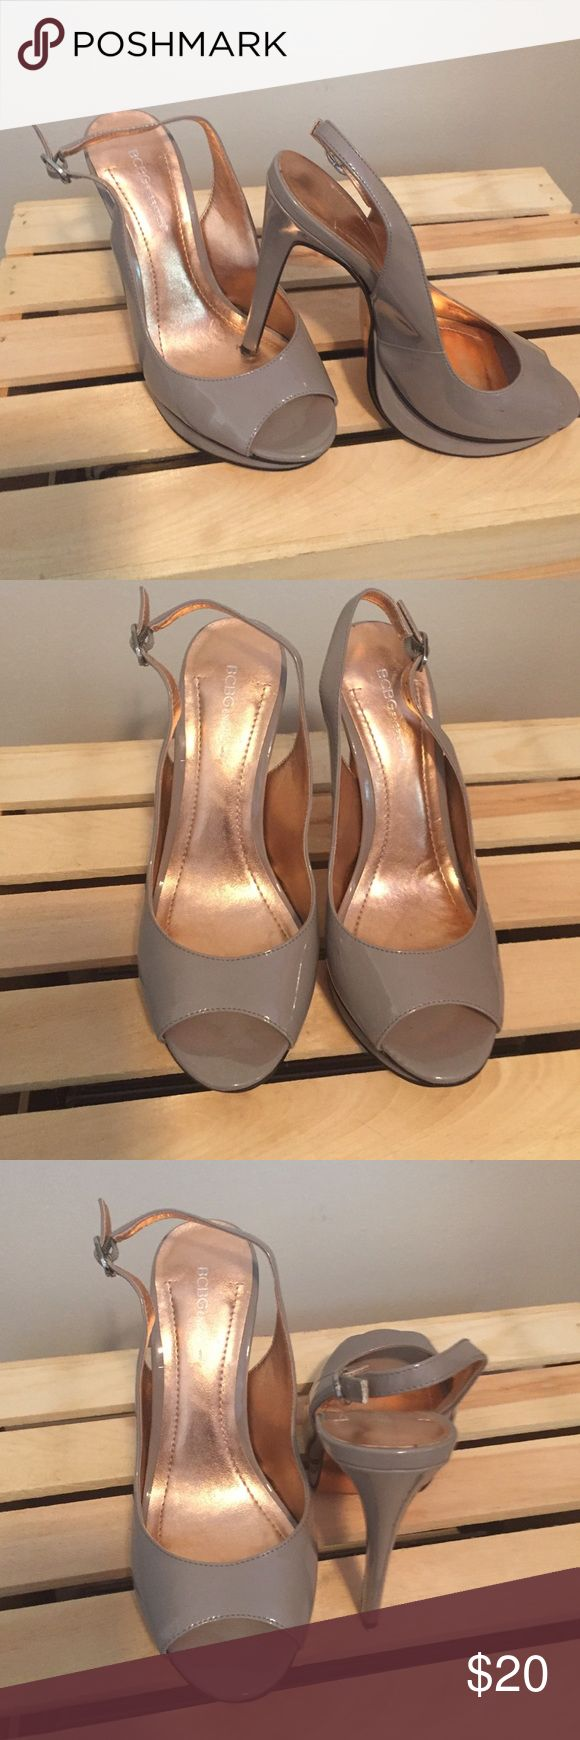 BCBG GENERATION slingback sandal BCBG GENERATION taupe patent slingback sandal. Color is beautiful and very versatile. 5 inch heel with slight platform sole. Great condition. BCBGeneration Shoes Sandals